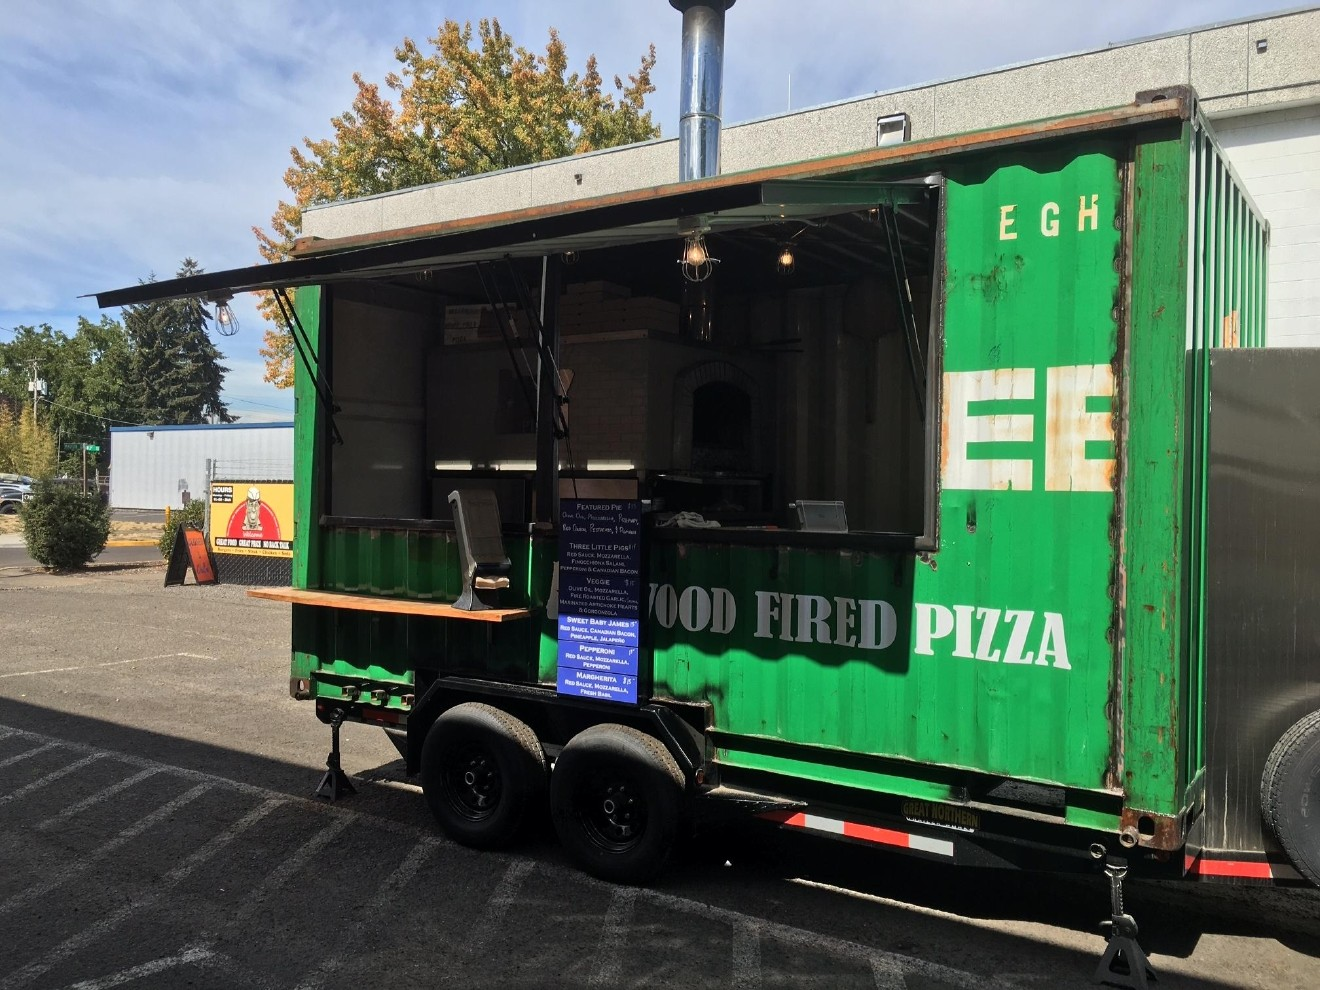 Oregon Wood Fired Pizza Serves Up Fresh Pizzas Right Out Of Their Own Brick Oven